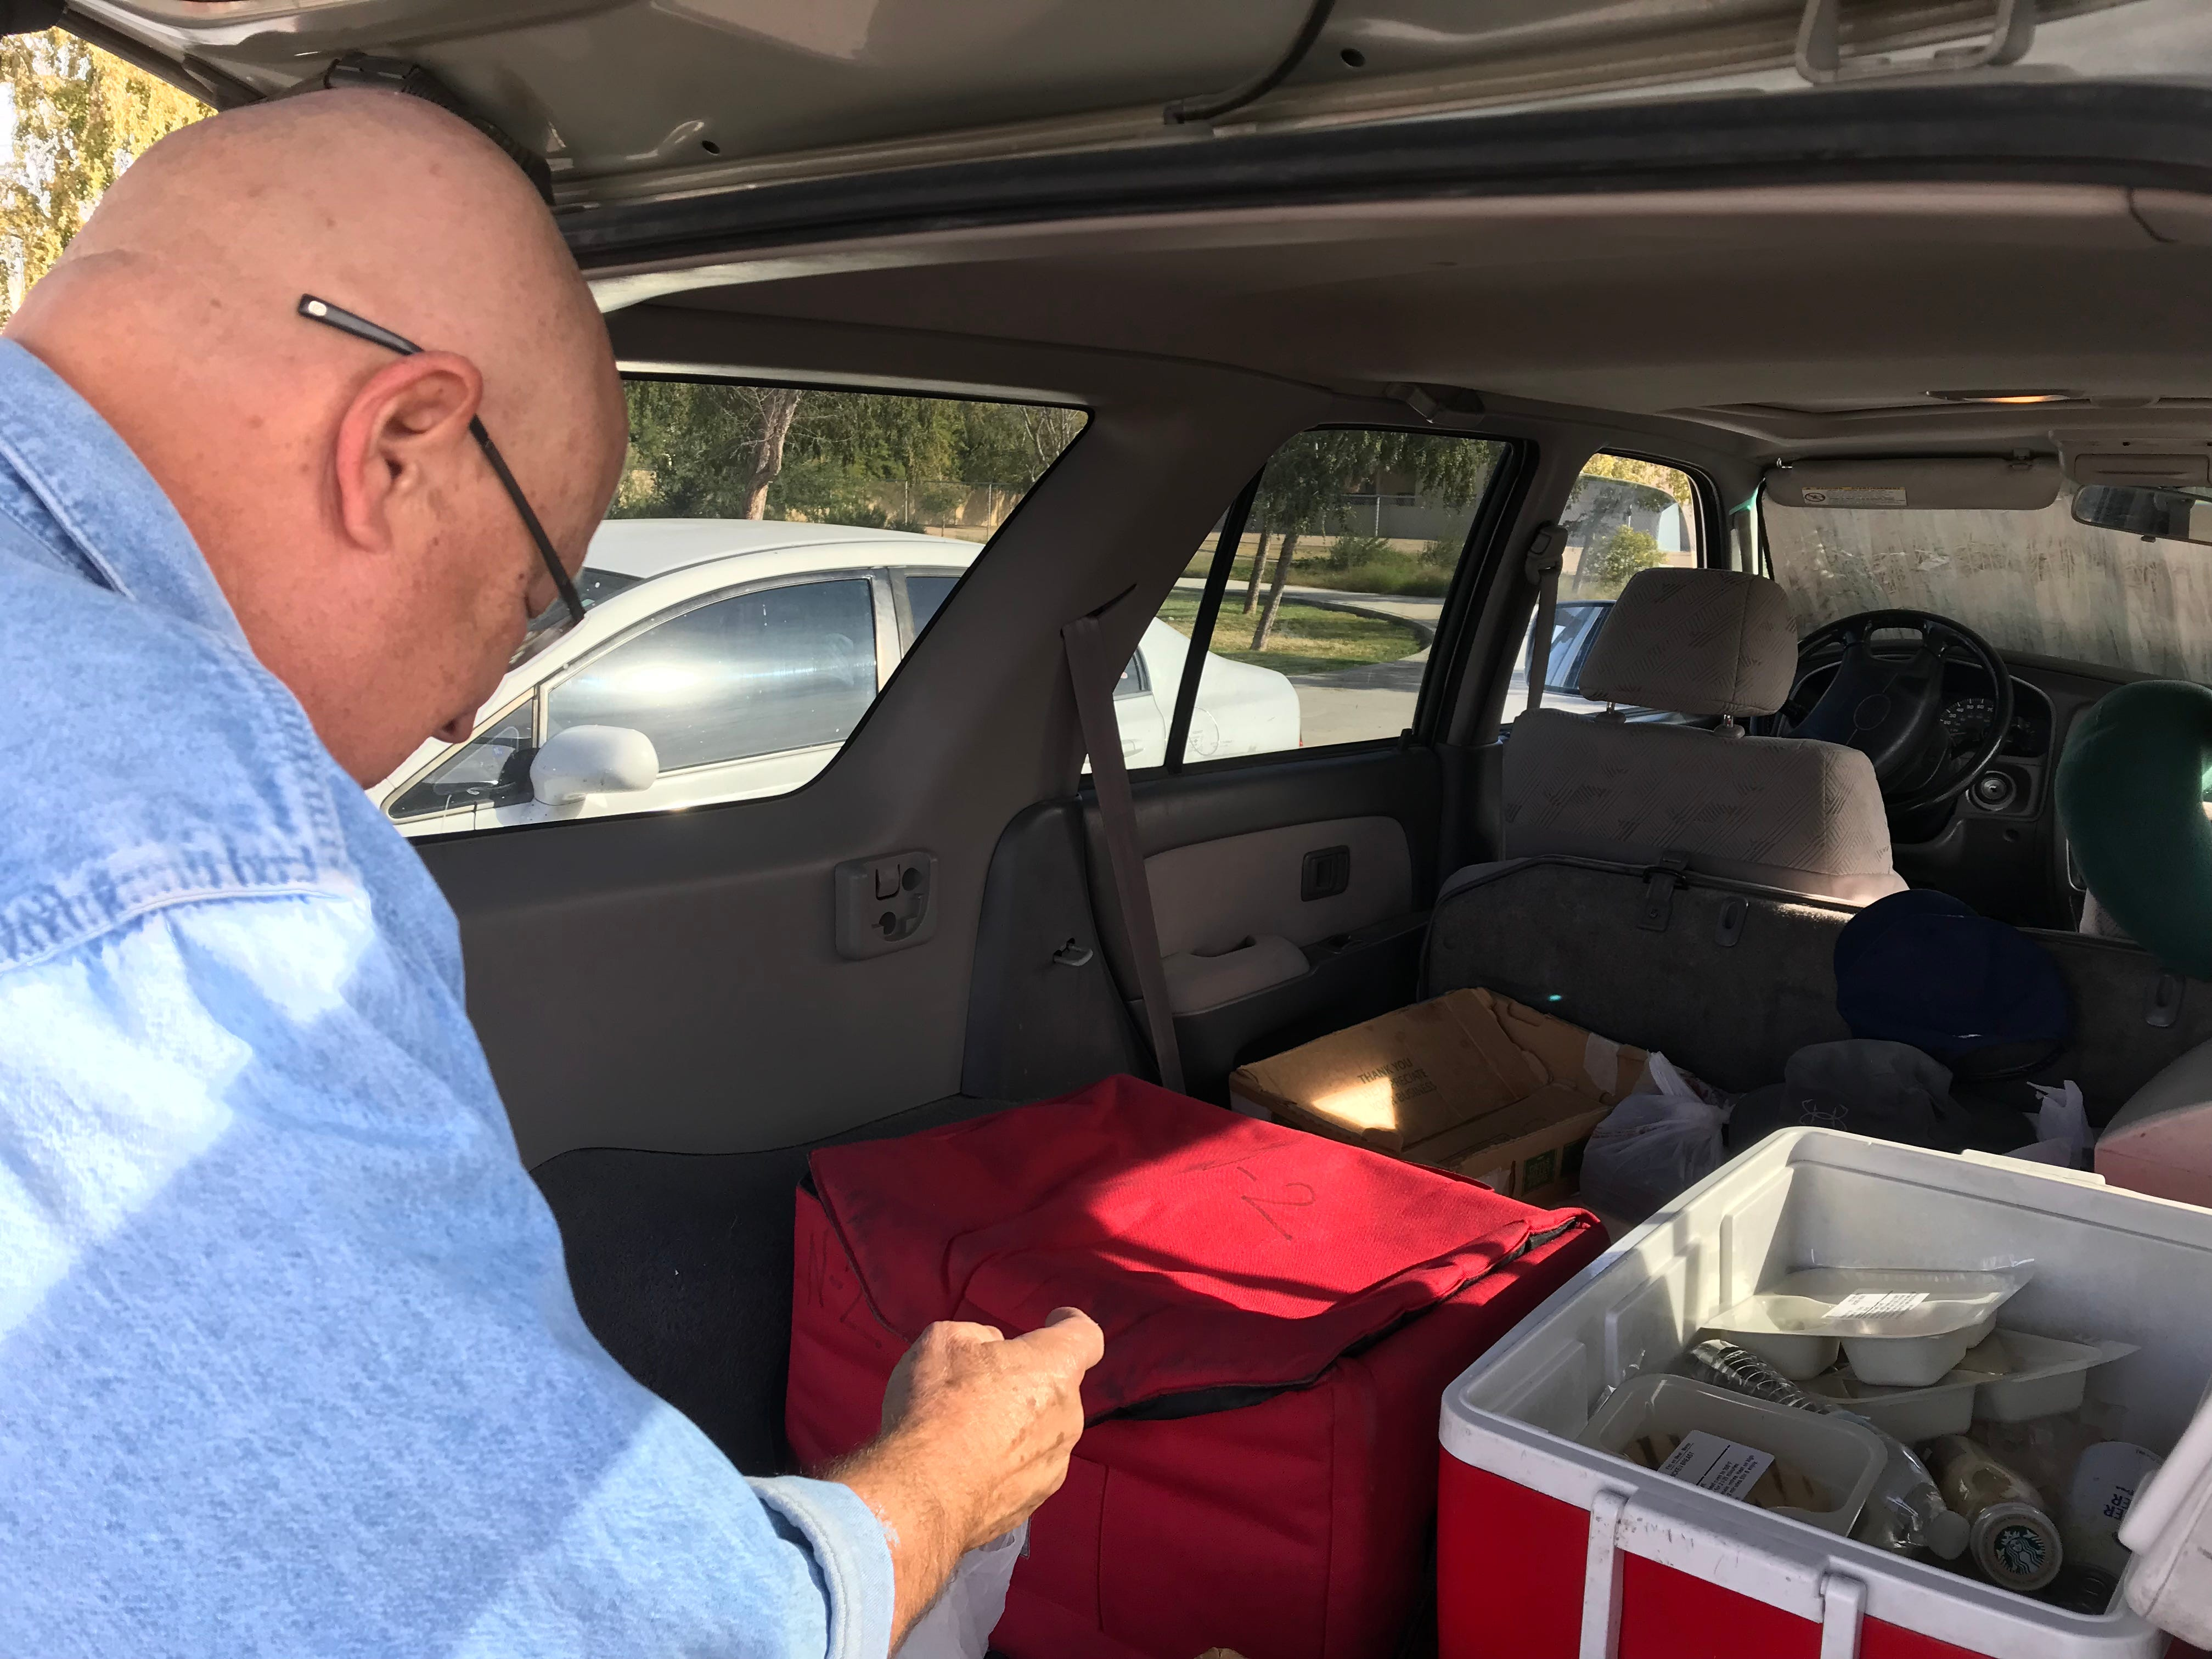 Meals on Wheels driver Dennis O'Melia double-checks his list before departing on his delivery run.